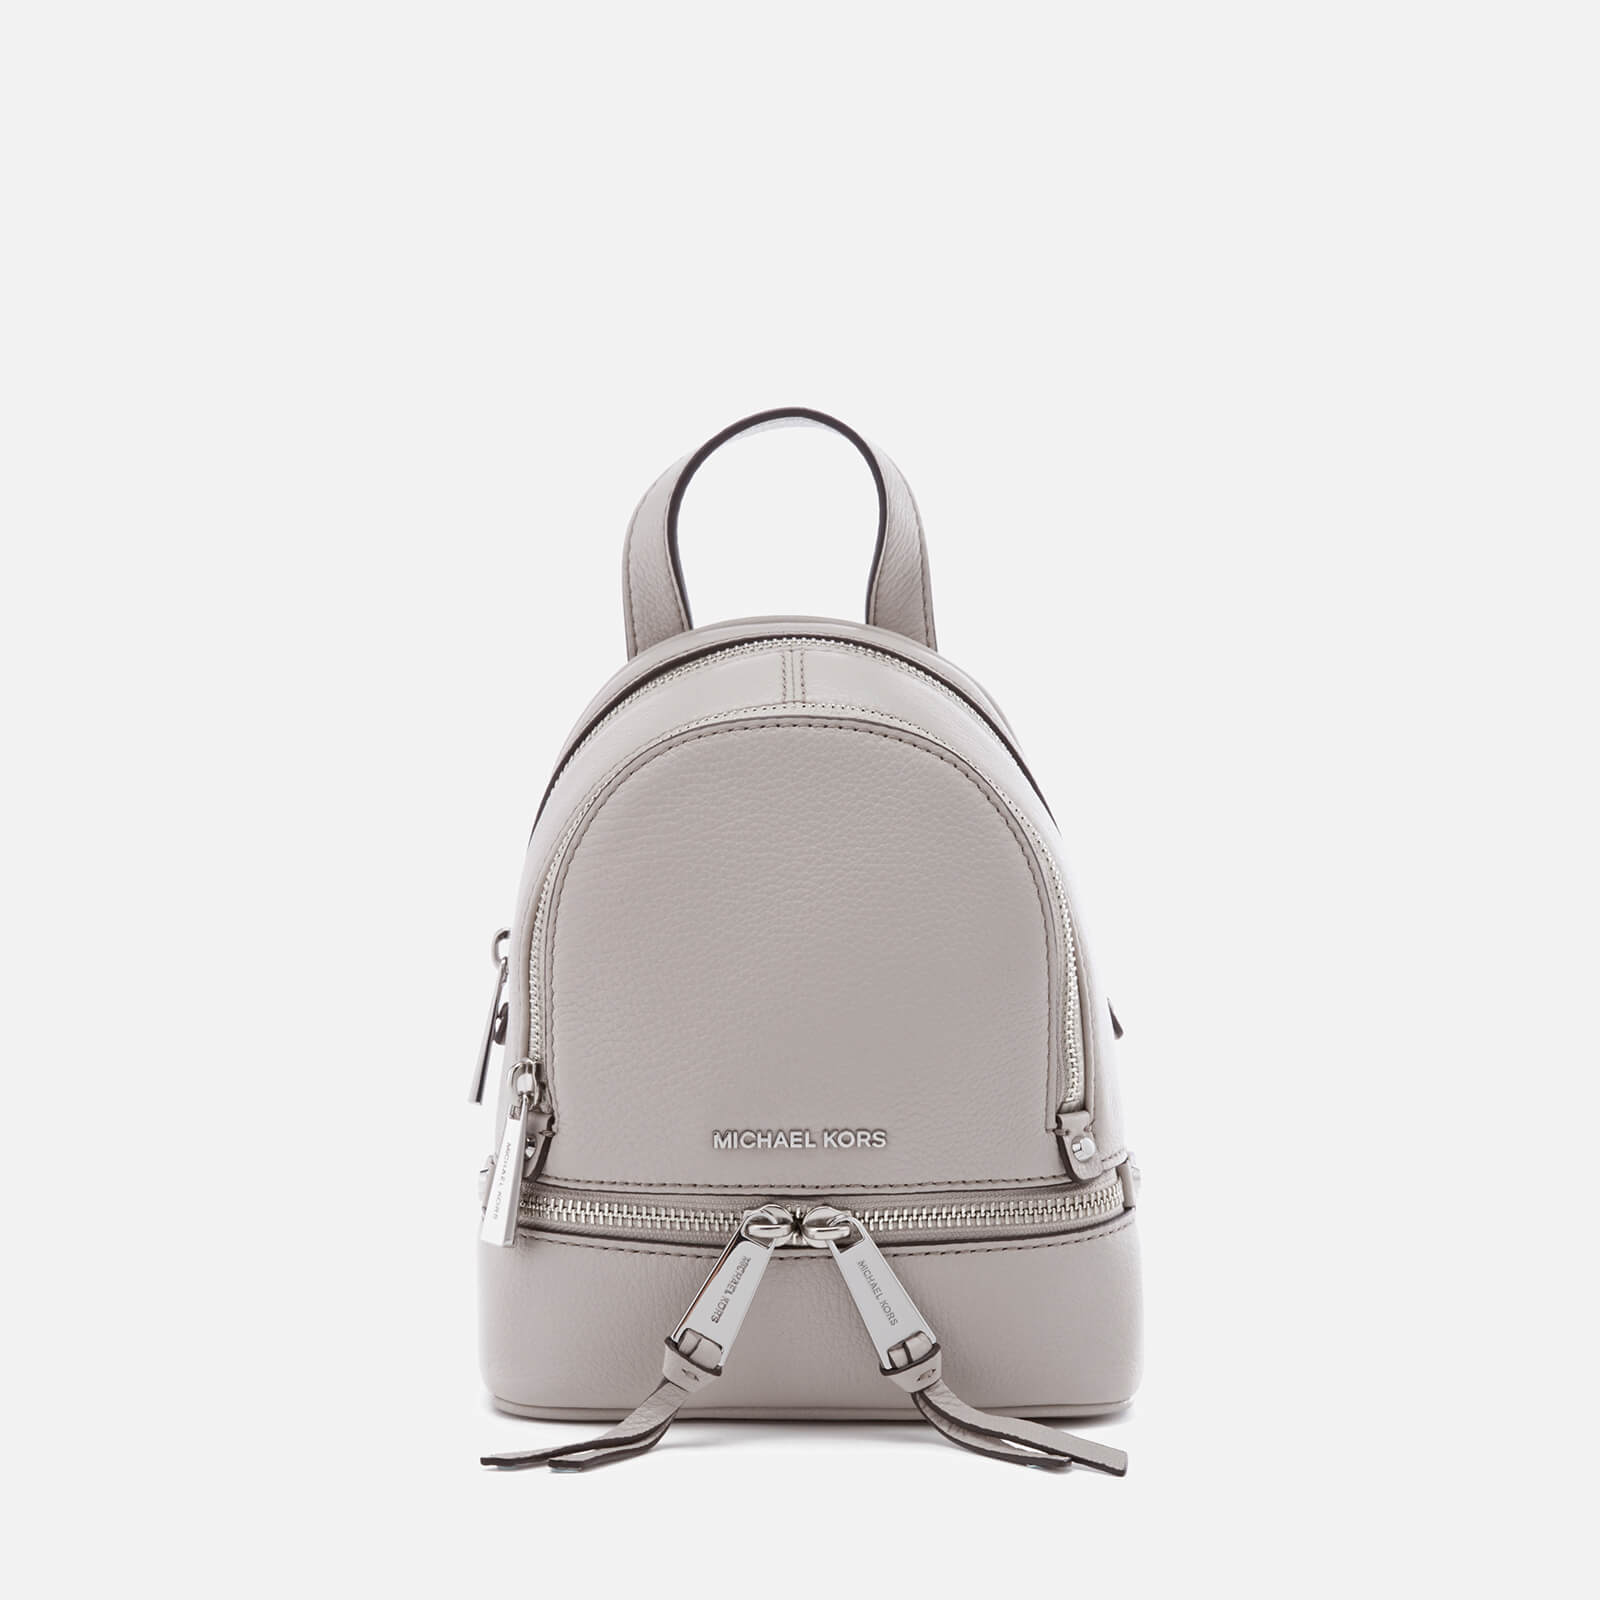 2792d0509a51e2 MICHAEL MICHAEL KORS Women's Rhea Zip Extra Small Backpack - Cement - Free  UK Delivery over £50